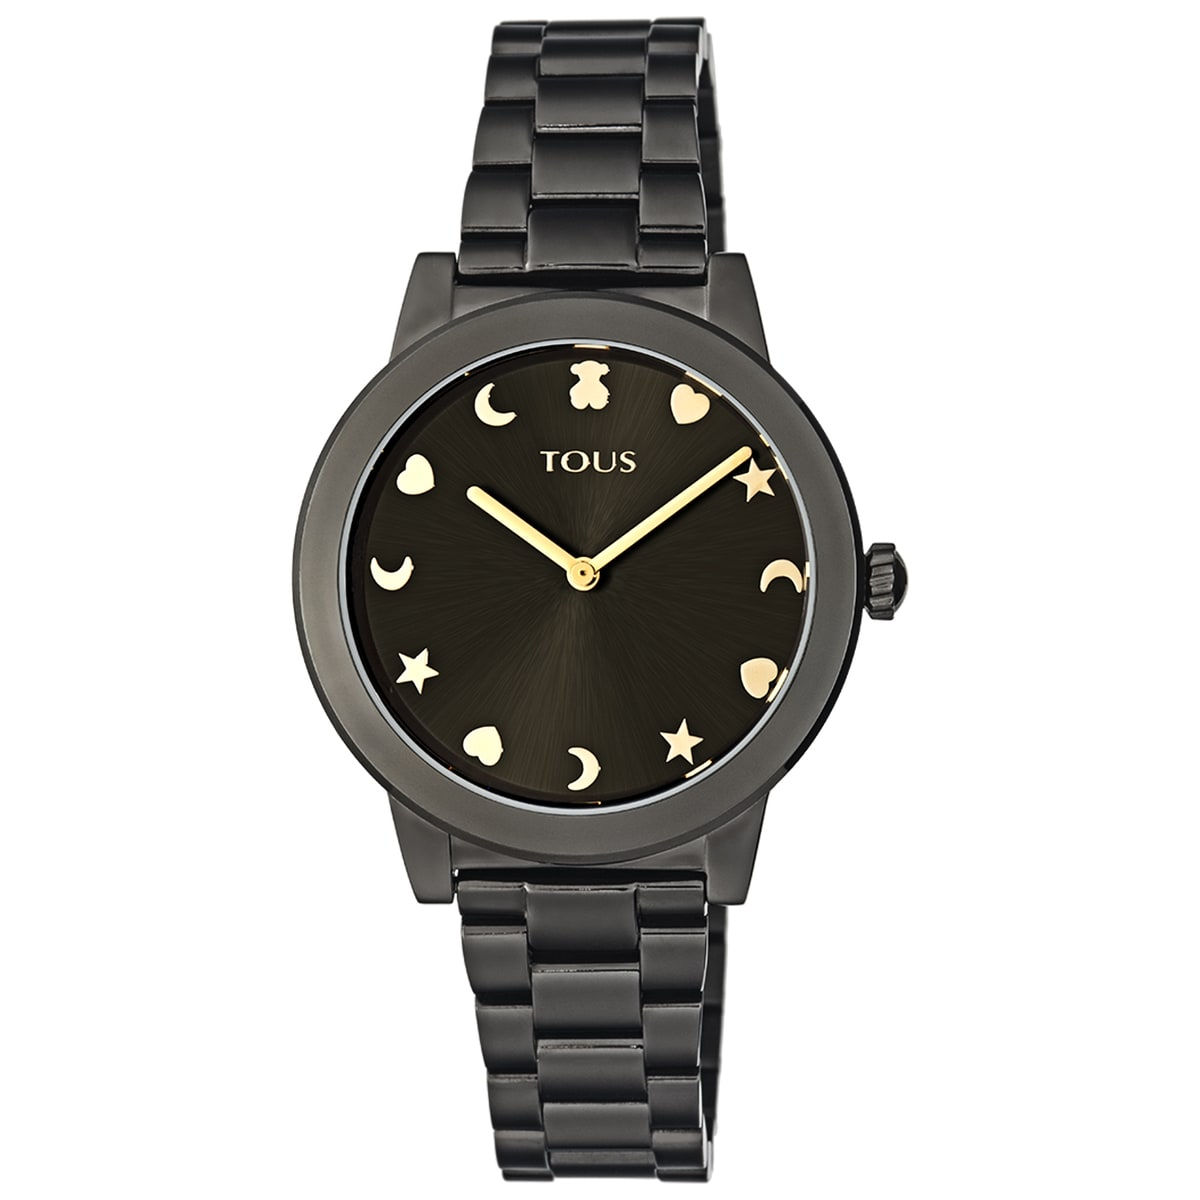 Black IP Steel Nocturne Watch with black dial